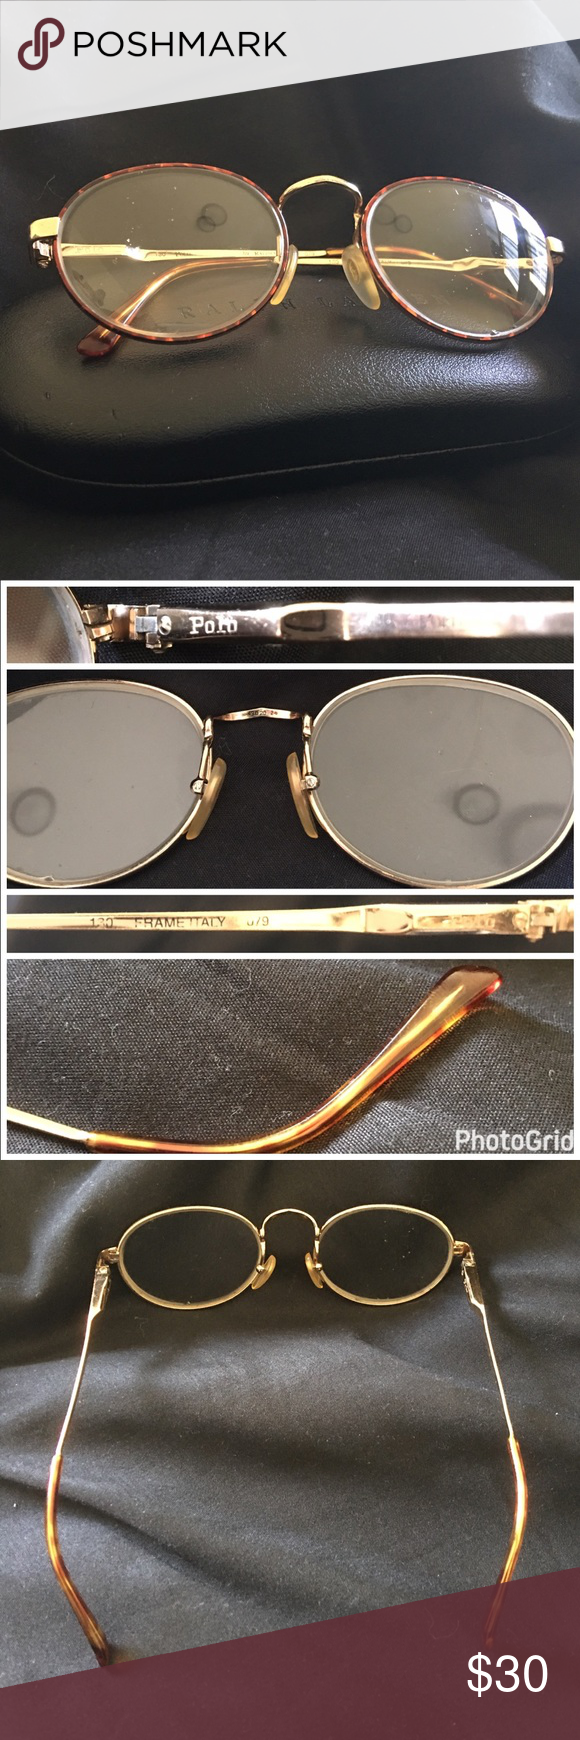 7473ae37efec6 Polo frames by Ralph Lauren Polo eyeglass frames  Previous prescription  glasses  Frame is great for sunglasses too! Normal wear.